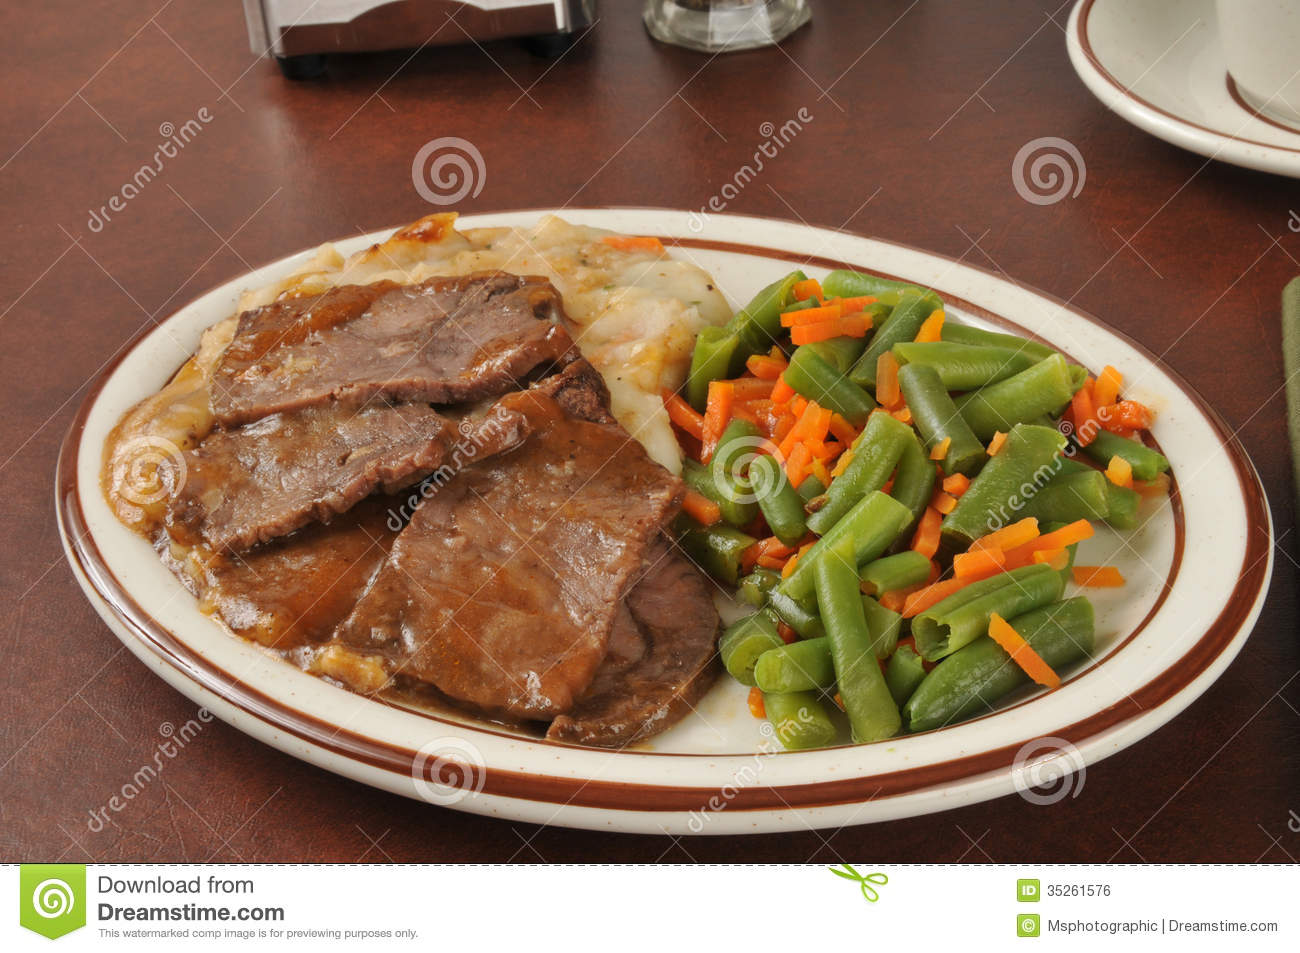 Roast Beef Dinner Royalty Free Stock Image - Image: 35261576